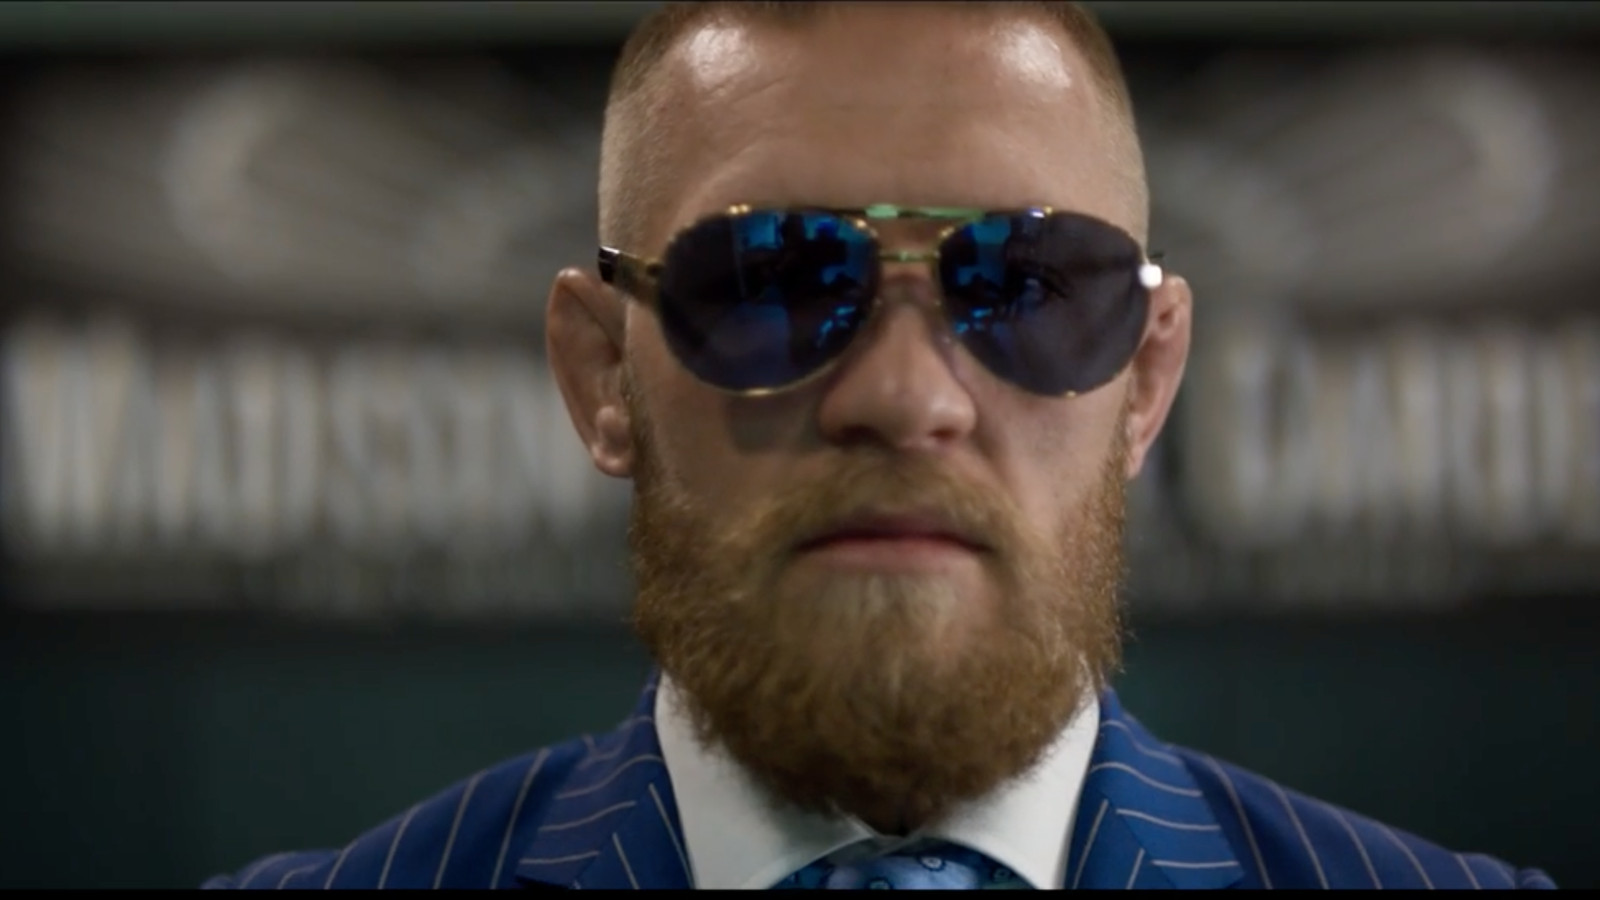 UFC 205 Videos: Two new promos for stacked Conor McGregor vs Eddie Alvarez card in New York